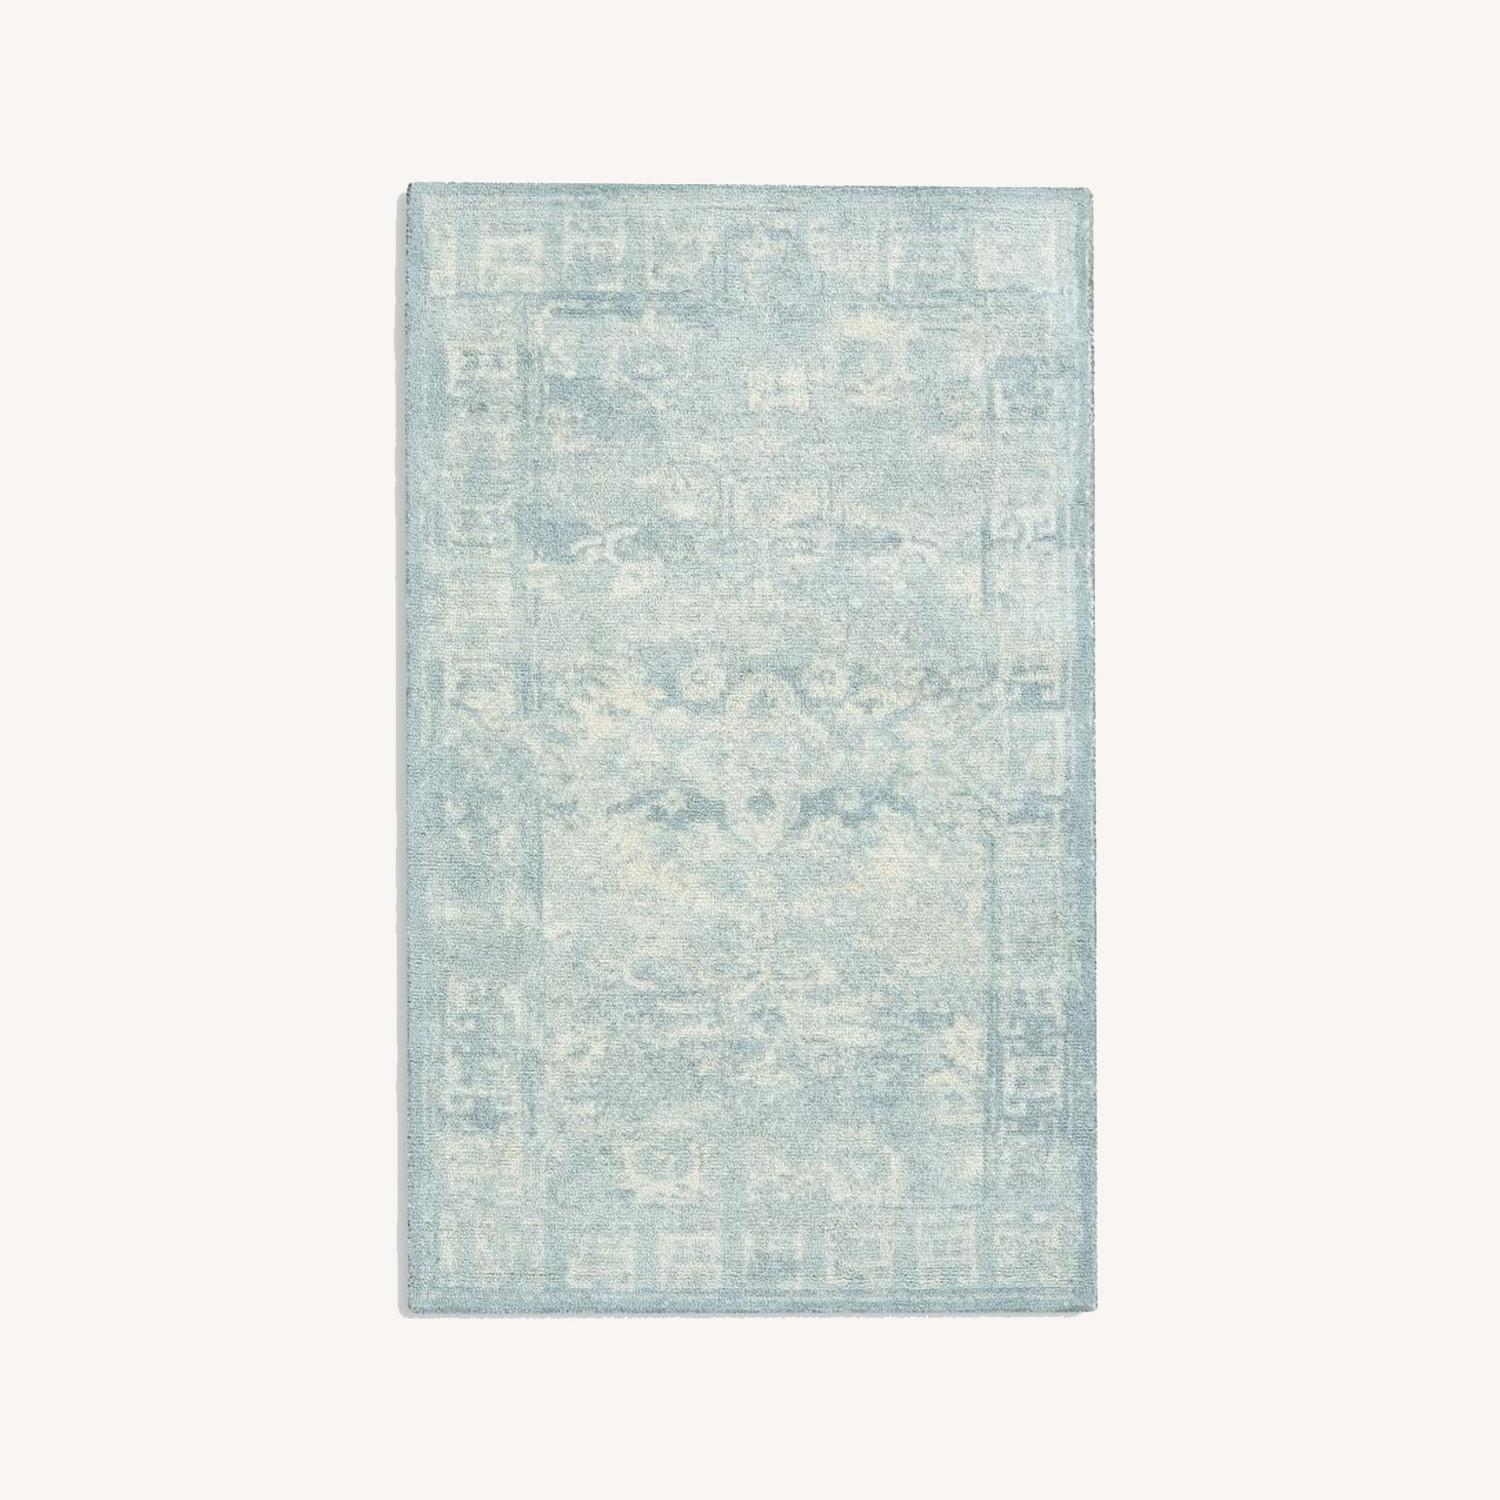 Pottery Barn Gabrielle Handtufted Wool Rug , 3 x 5 - image-0